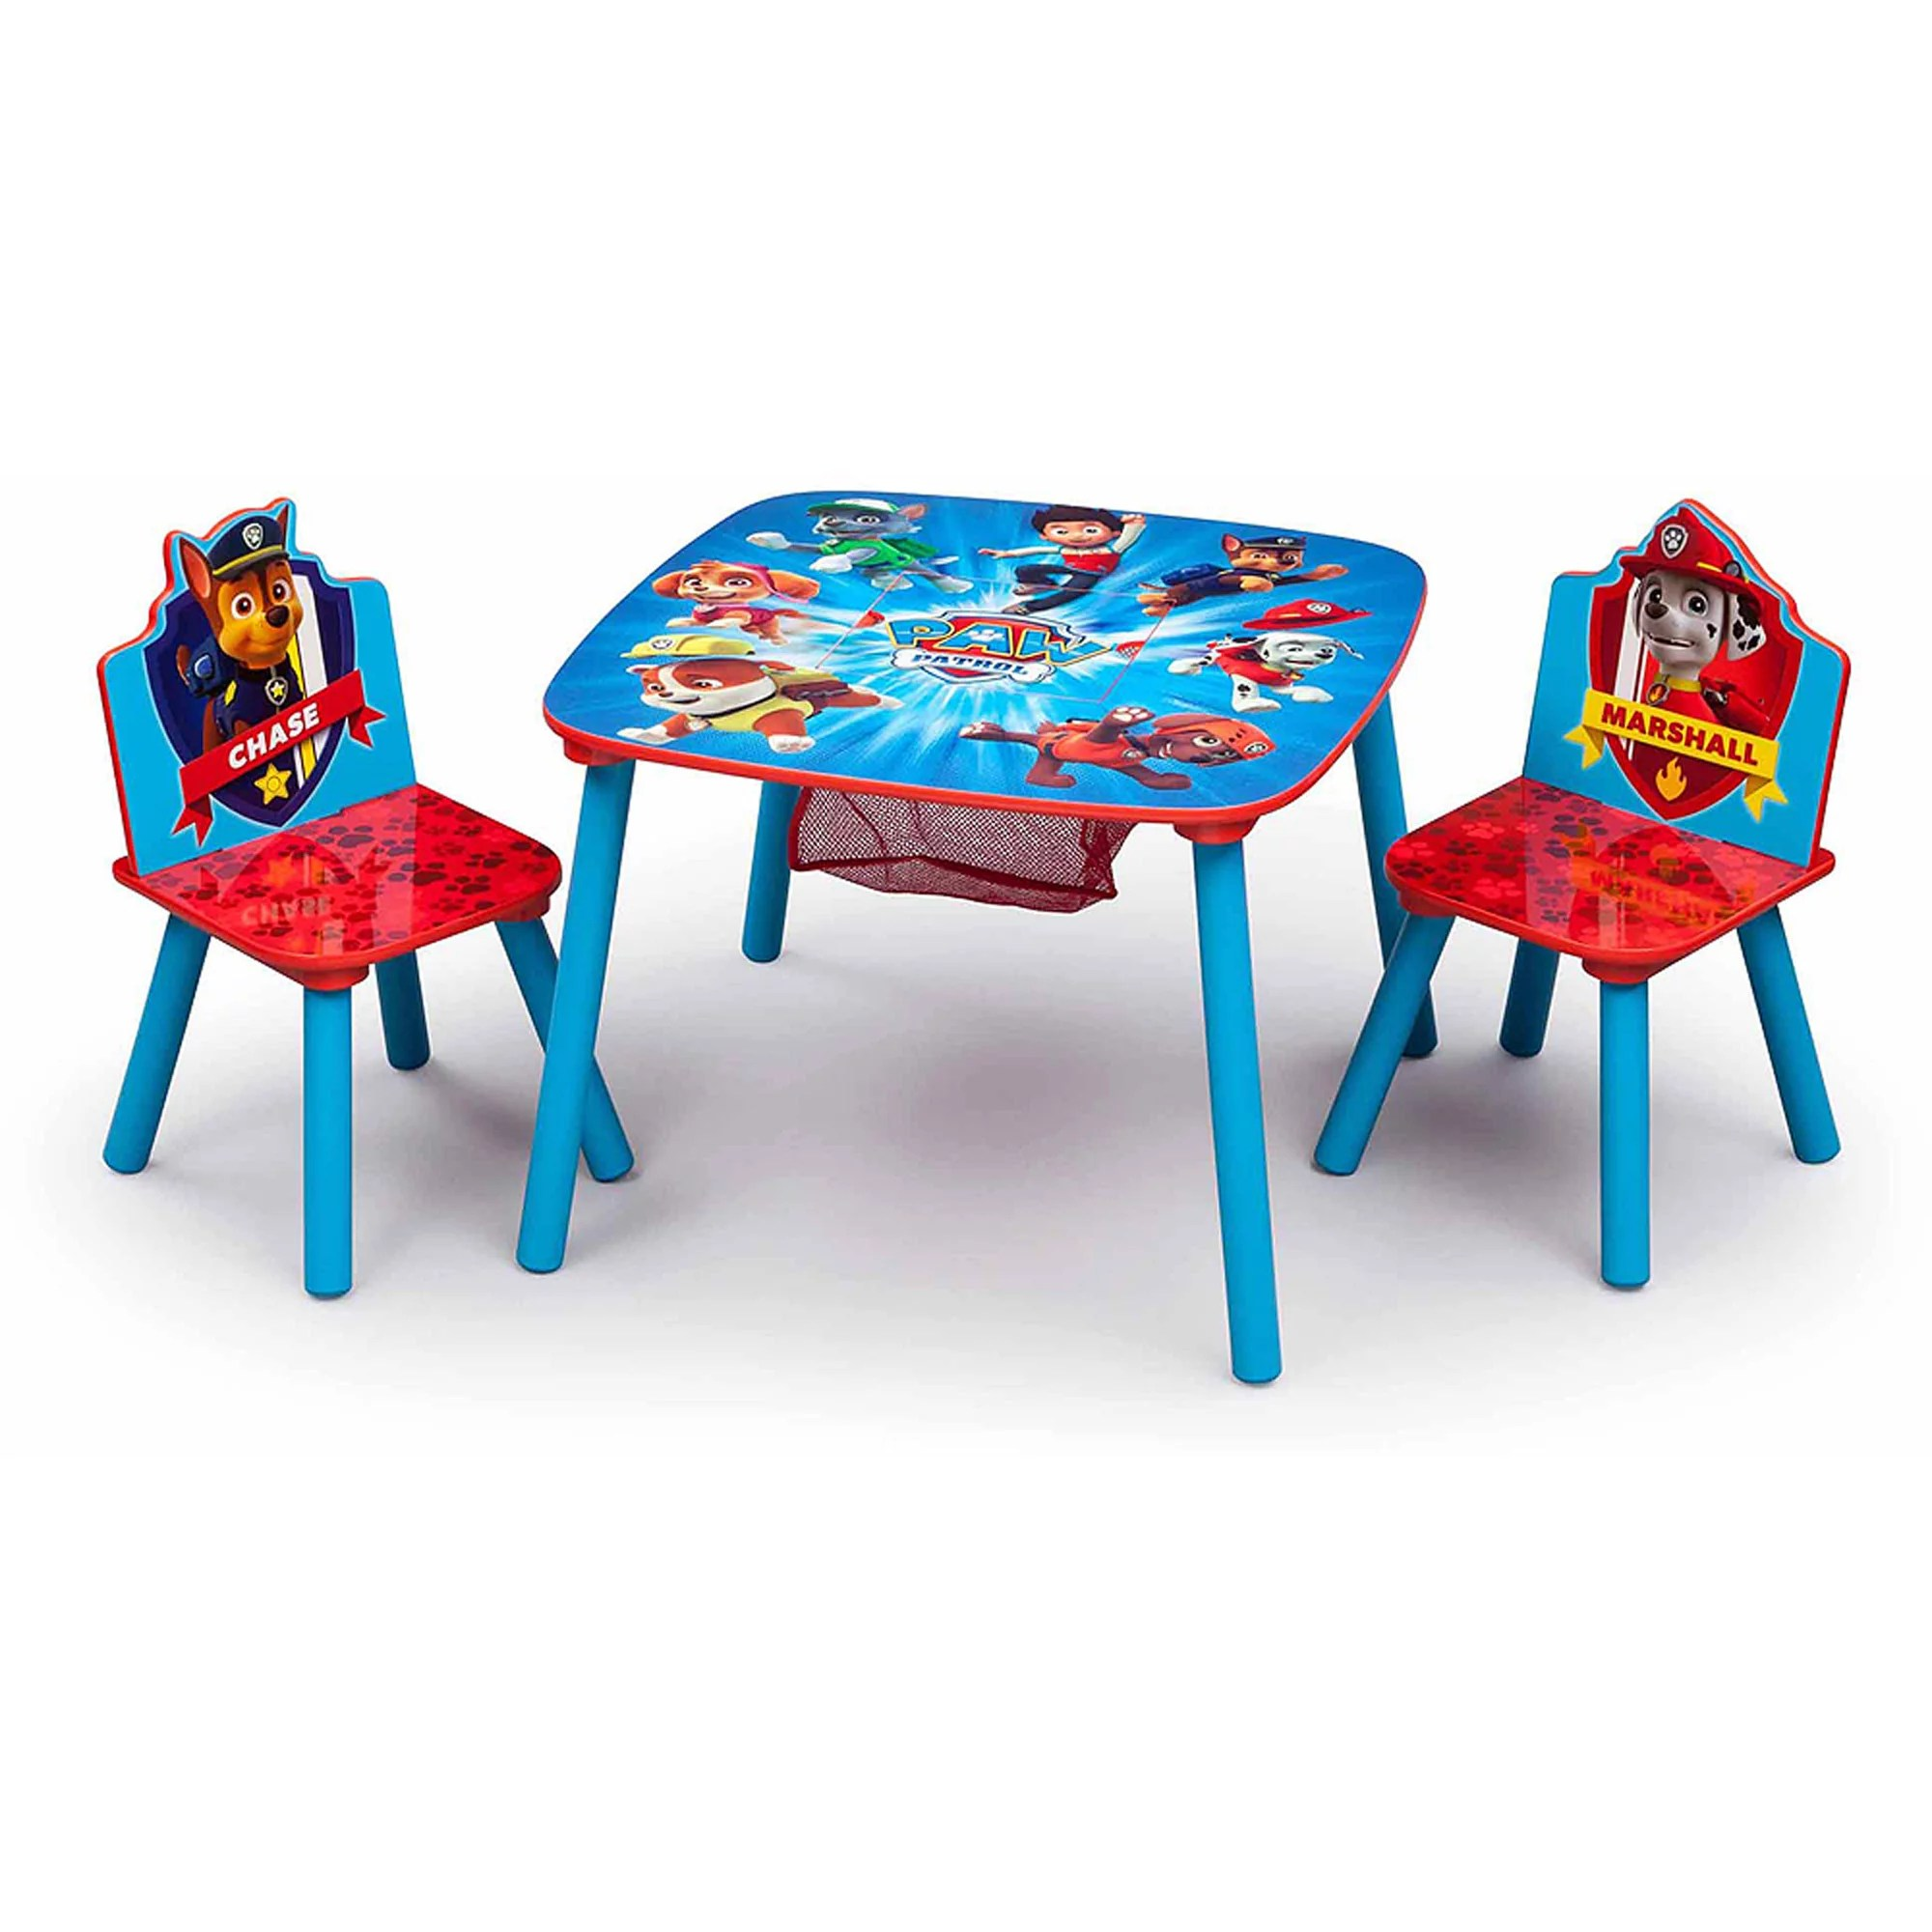 where to buy toddler table and chairs bamboo office chair mat nick jr dora the explorer wood kids storage set by delta children walmart com